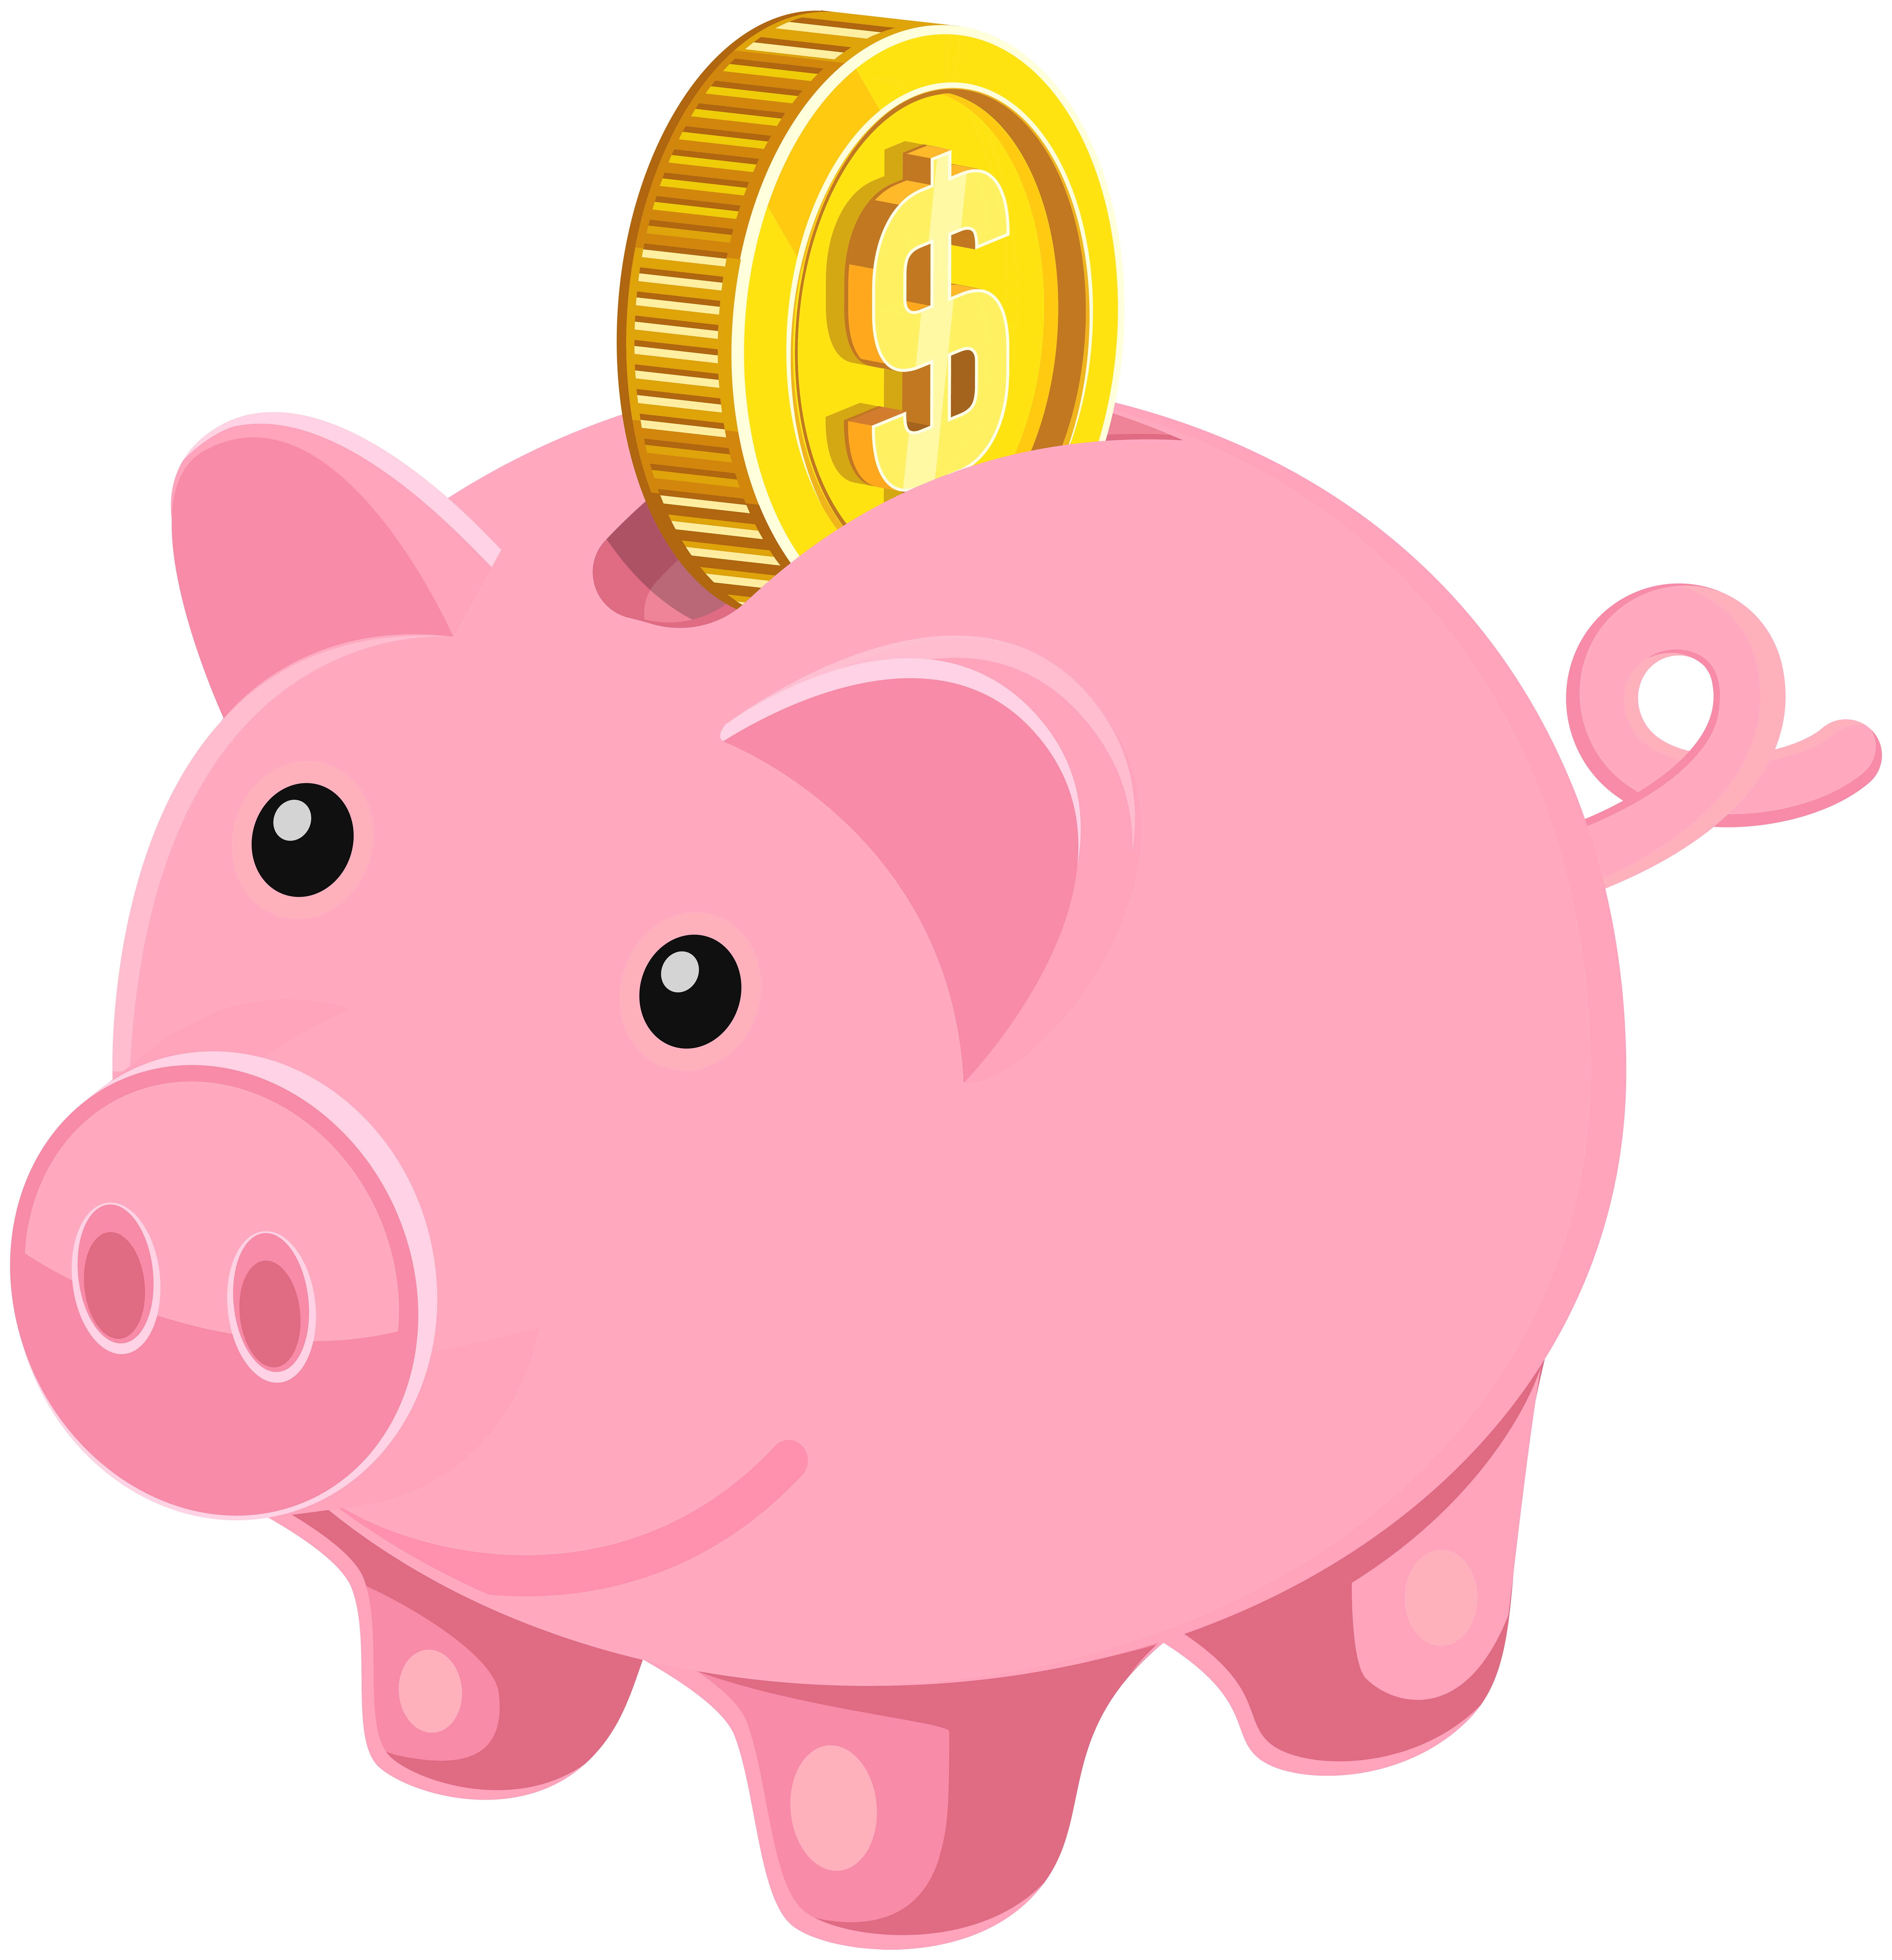 Piggy Bank Png Clip Art Image Gallery Yopriceville High Quality Images And Transparent Png Free Clipart In 2021 Piggy Bank Art Images Clip Art